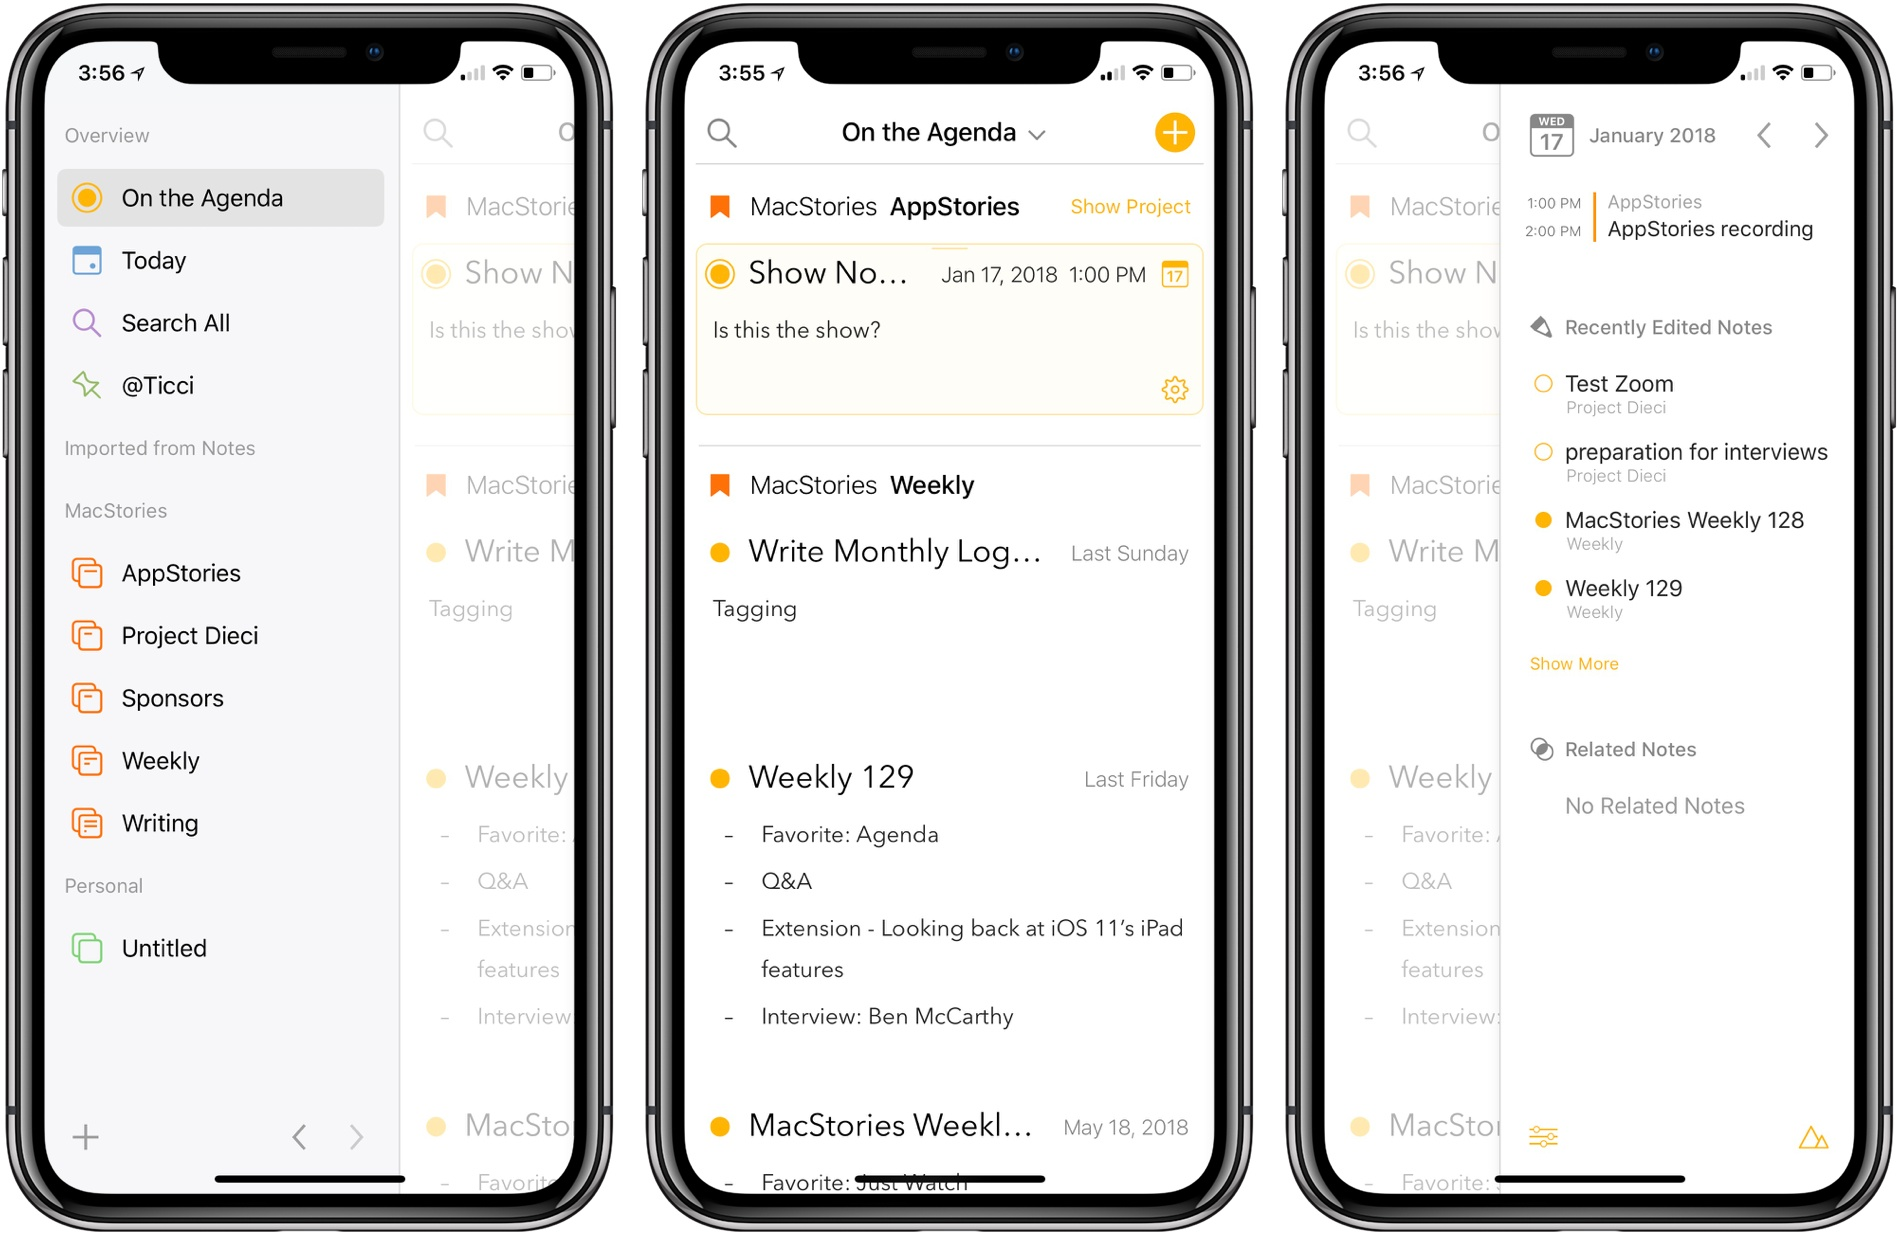 On the iPhone, Agenda uses the same sliding panels where they dominate most of the screen.